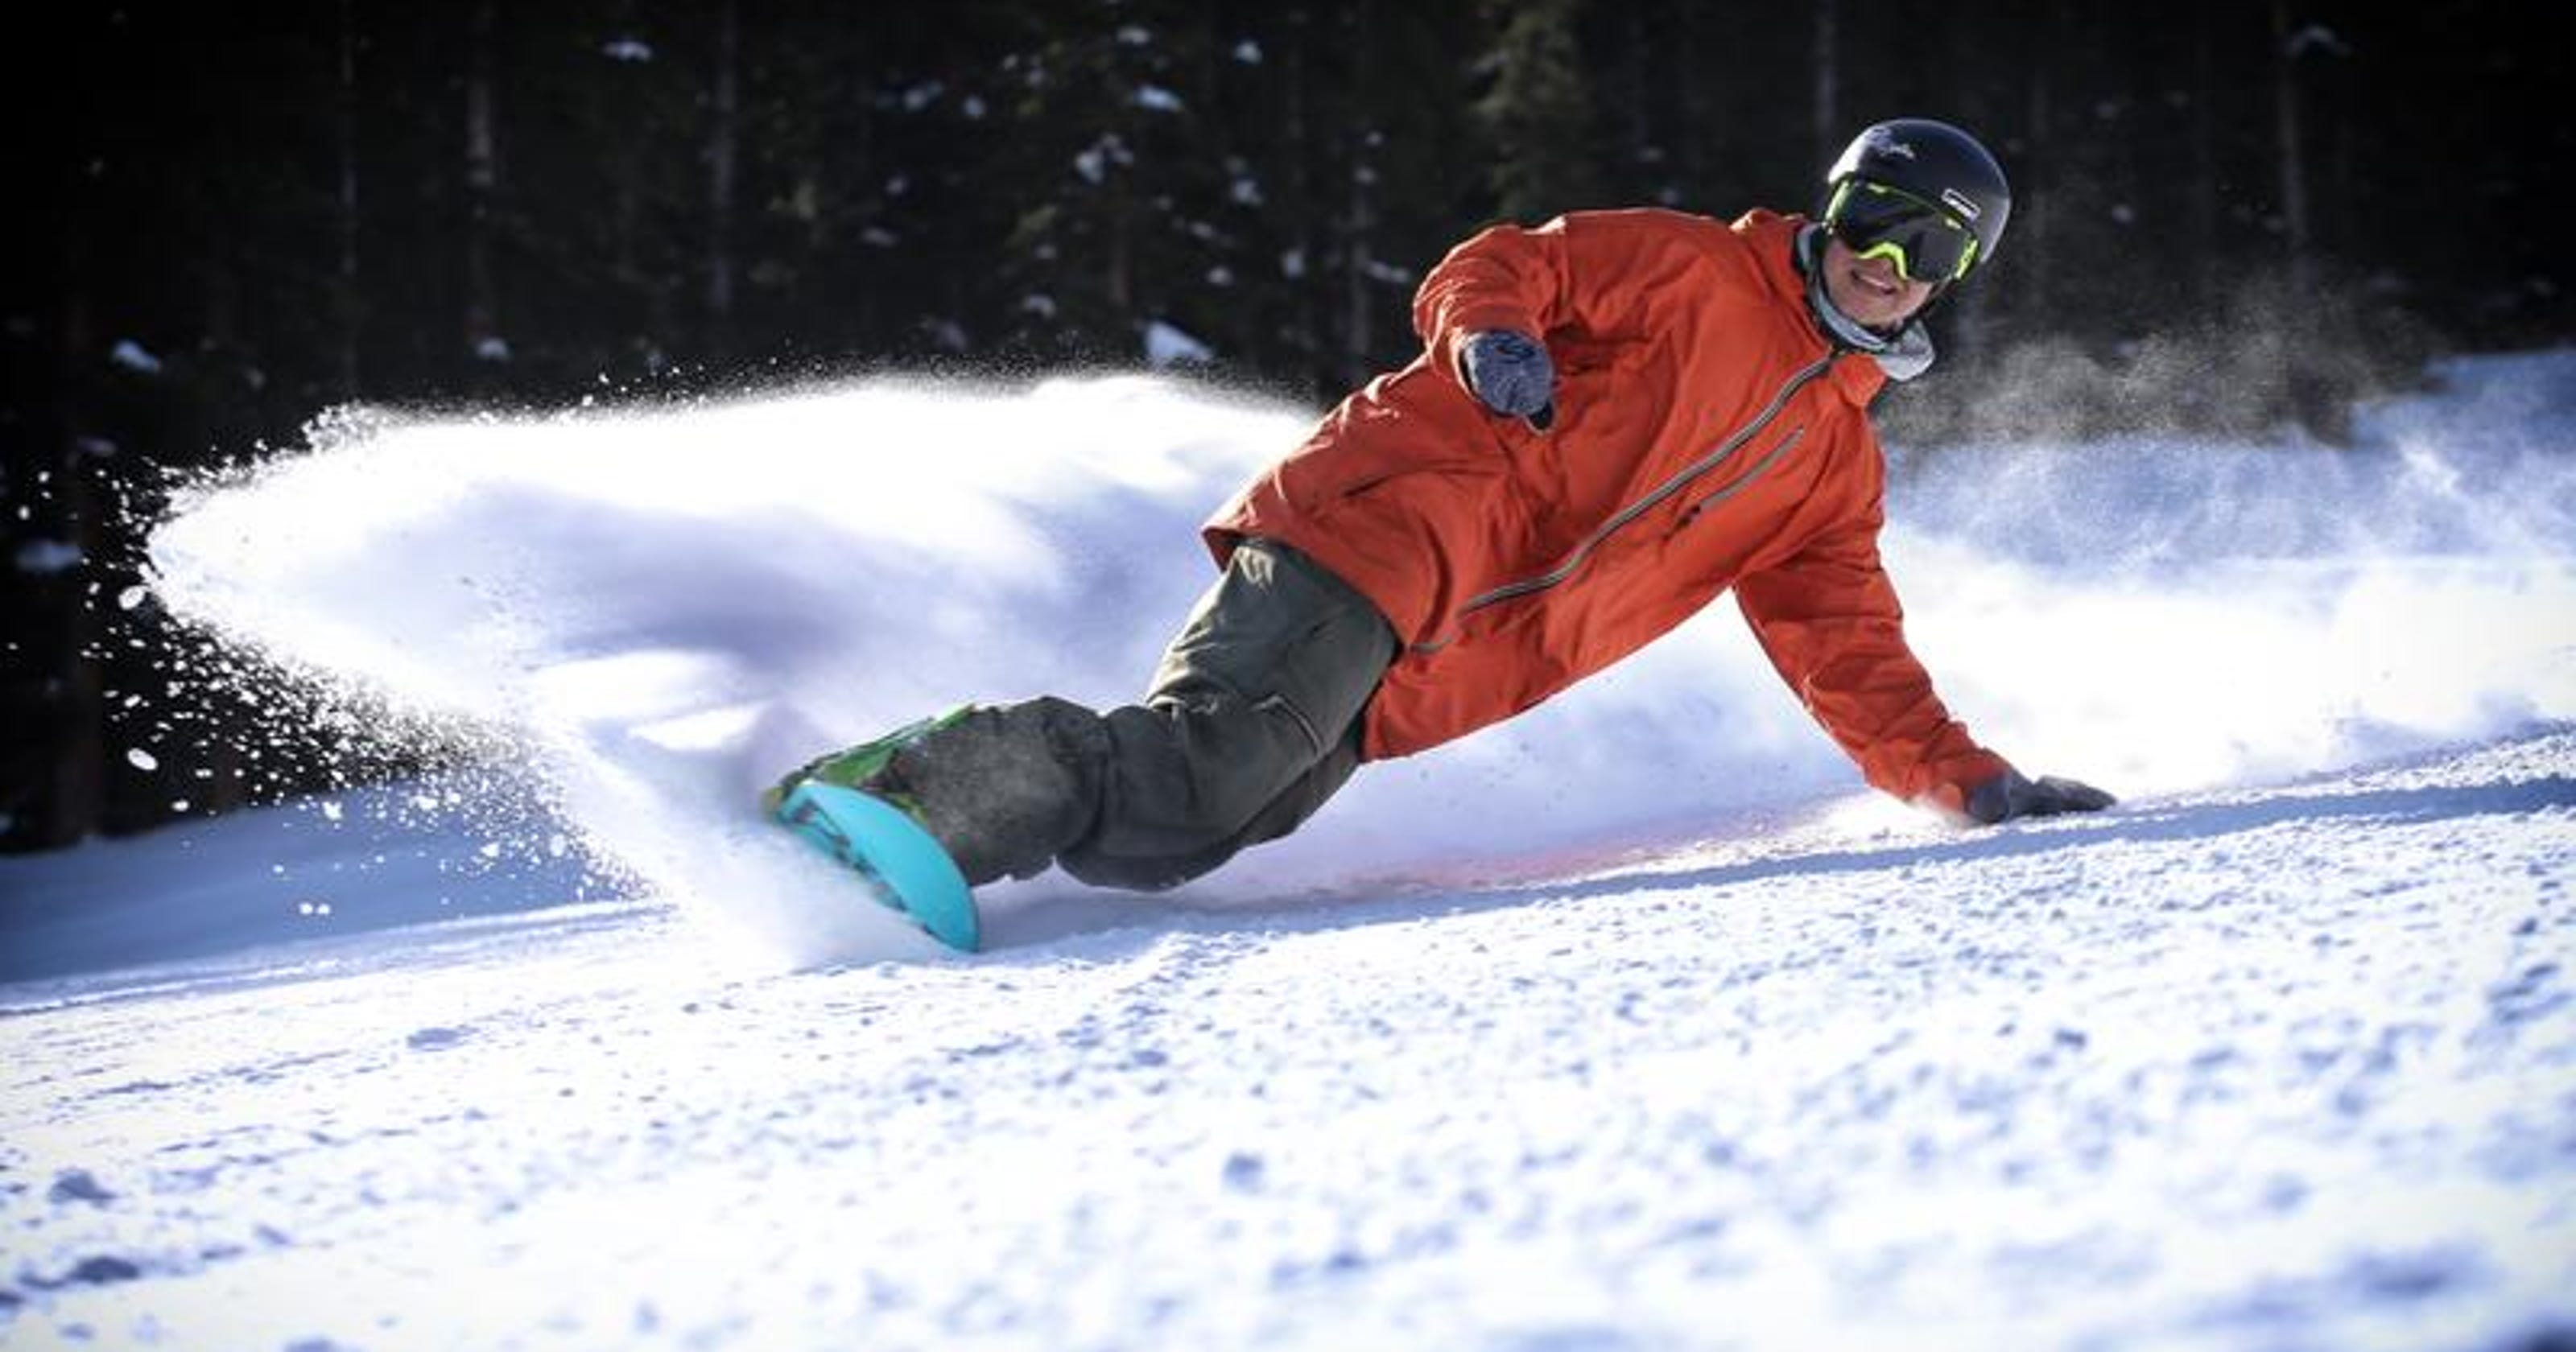 d7037091a09 Meyers  Colorado ski resorts used to ban snowboarding